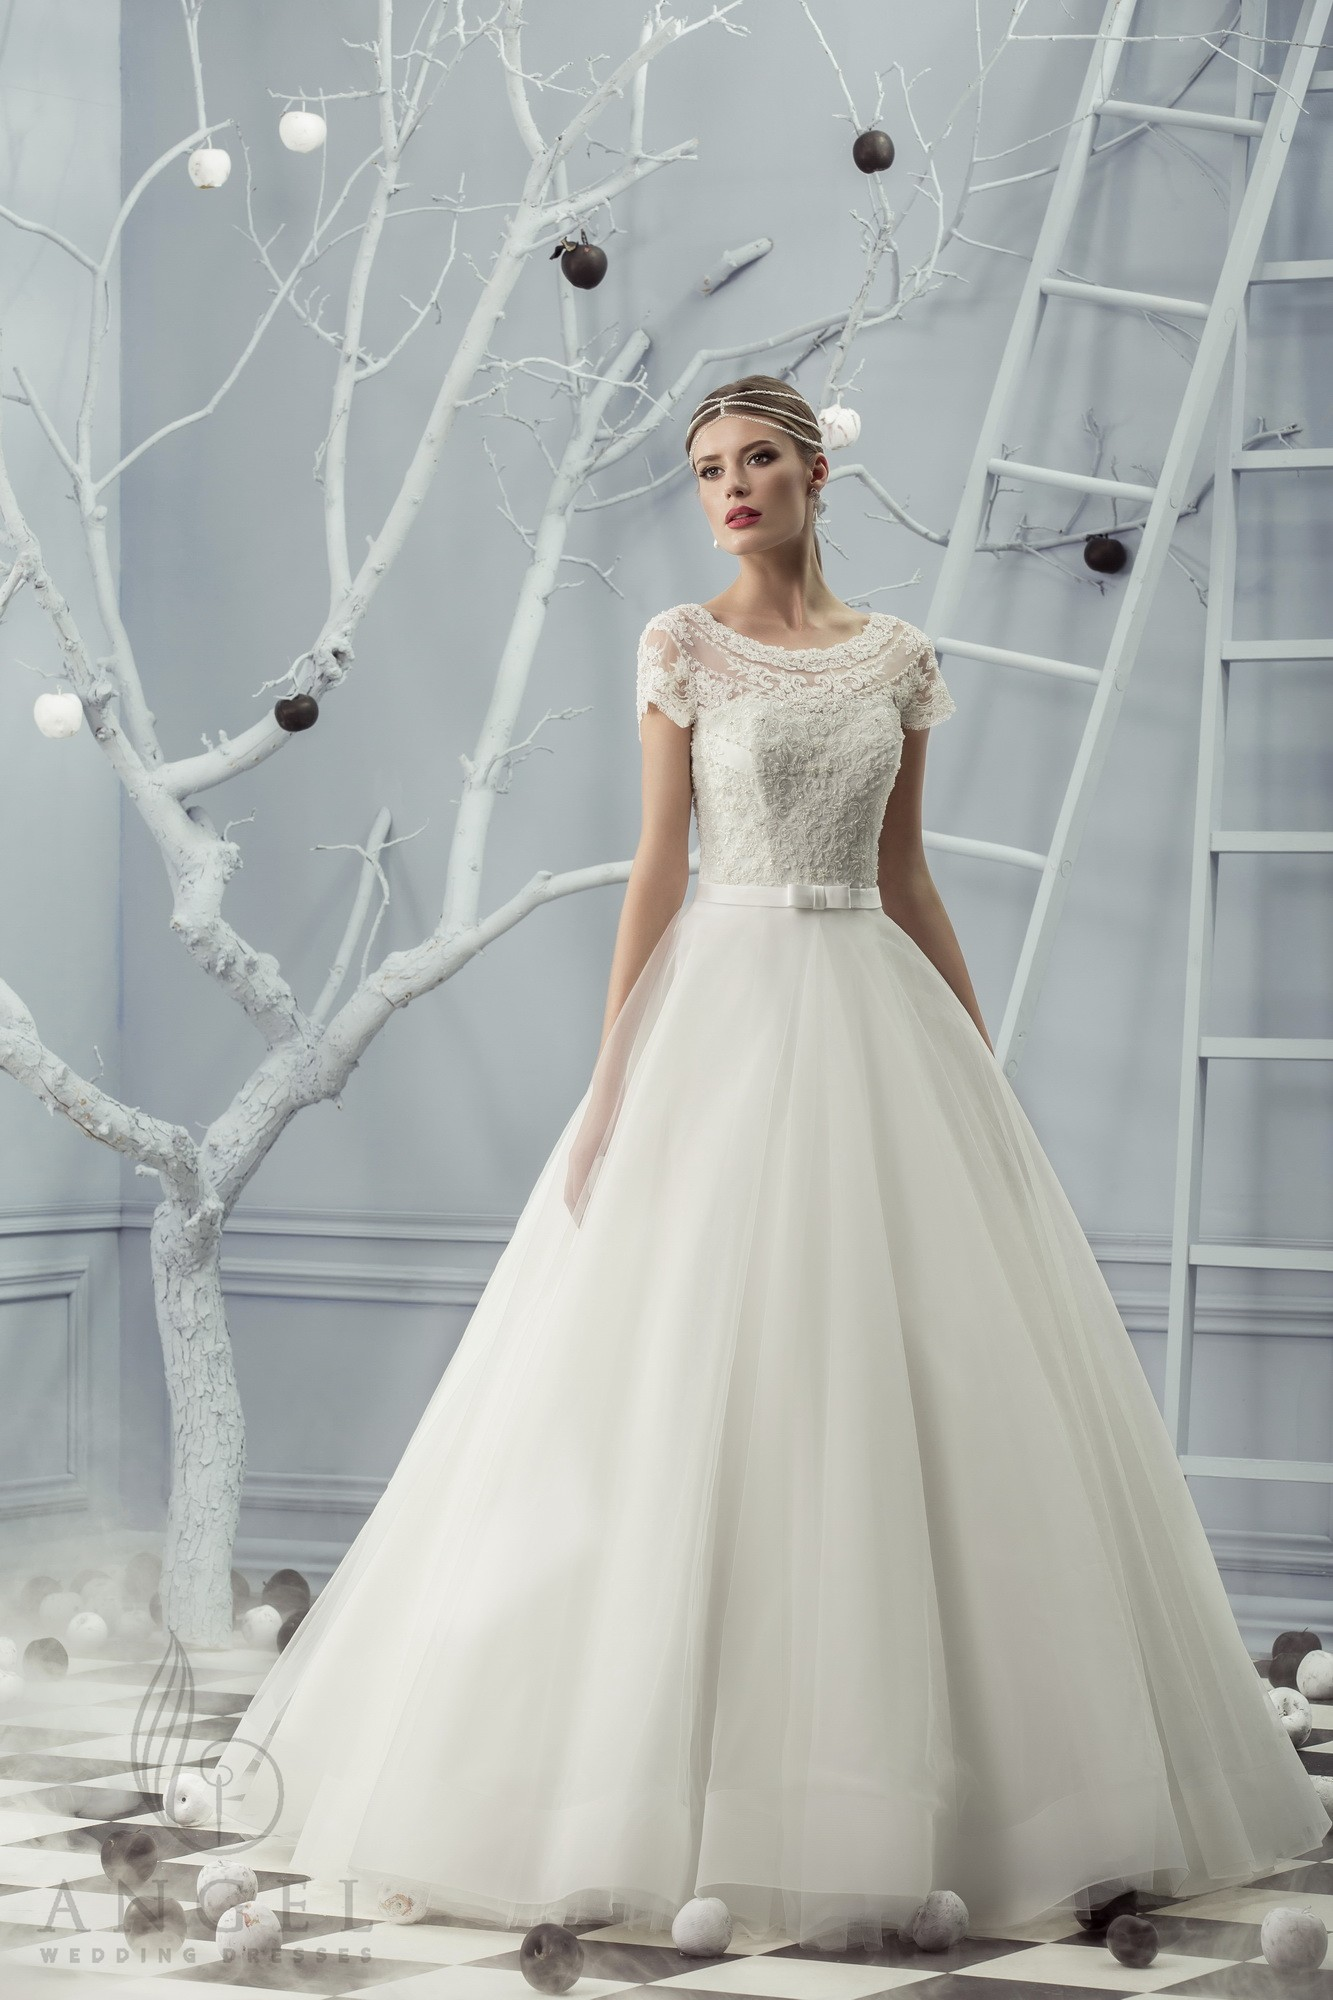 https://angel-novias.com/images/stories/virtuemart/product/Colorado.jpg